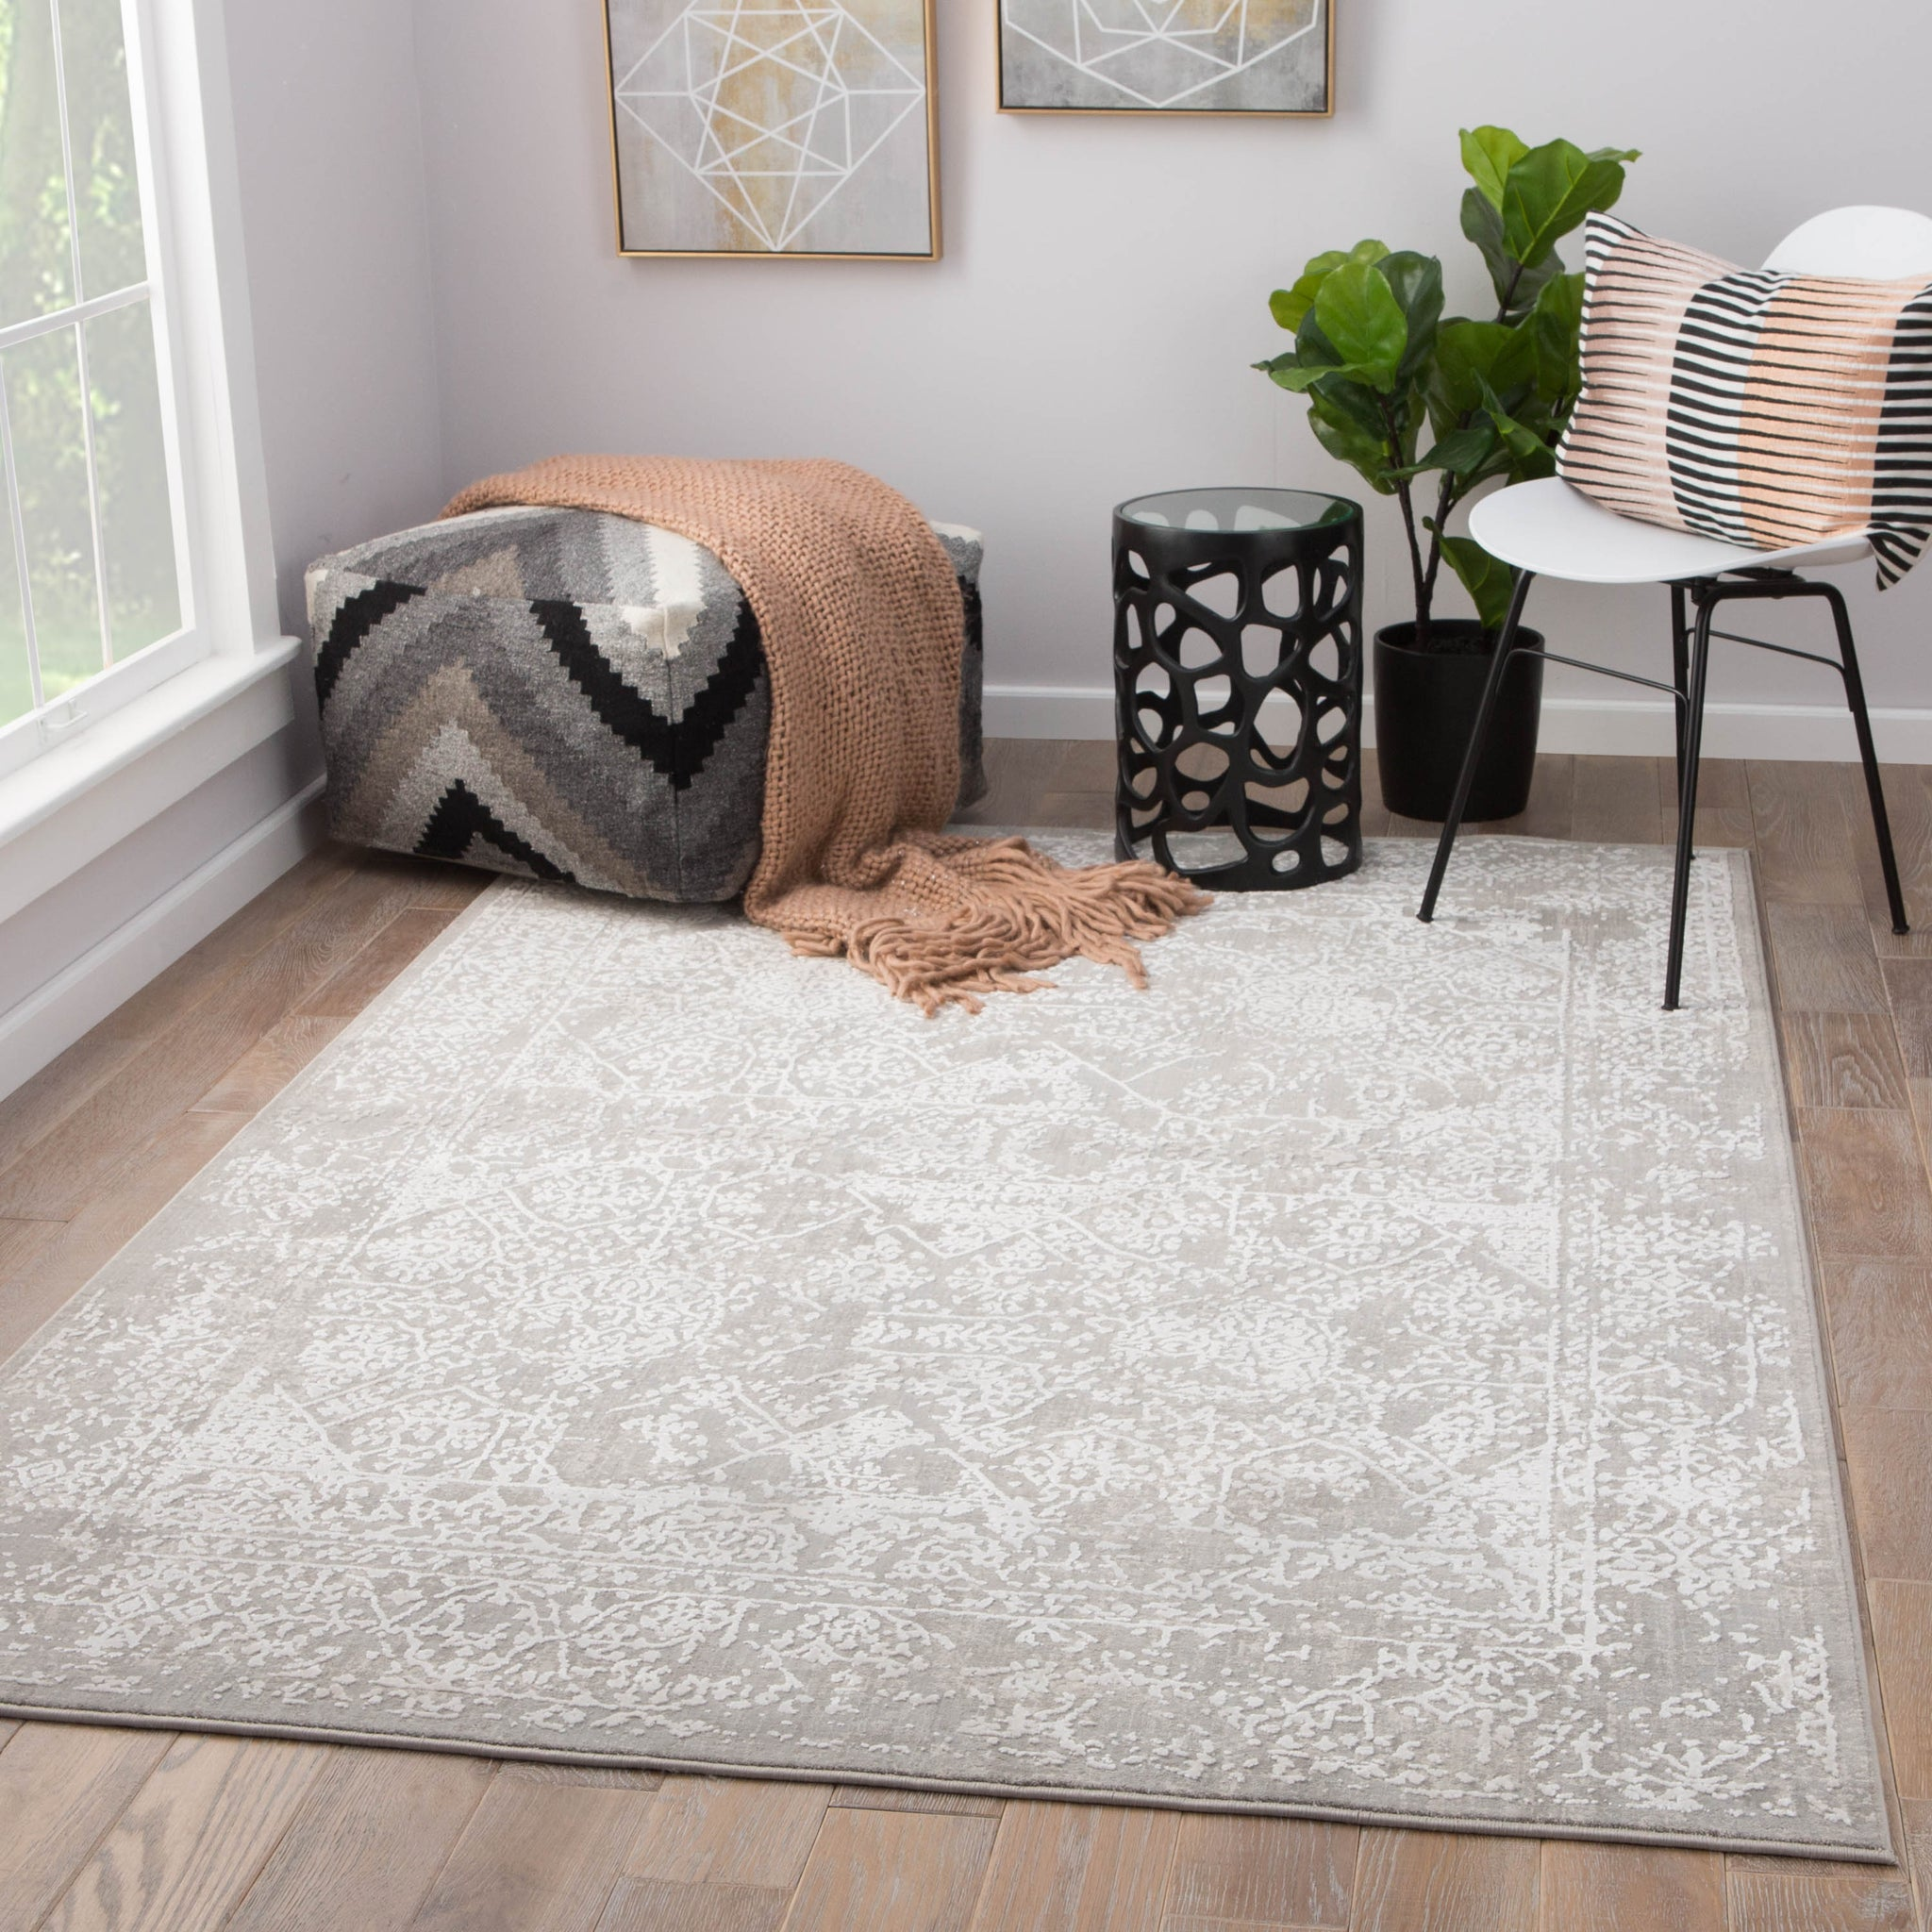 Lianna abstract gray white area rug design by jaipur for Gardening tools jaipur